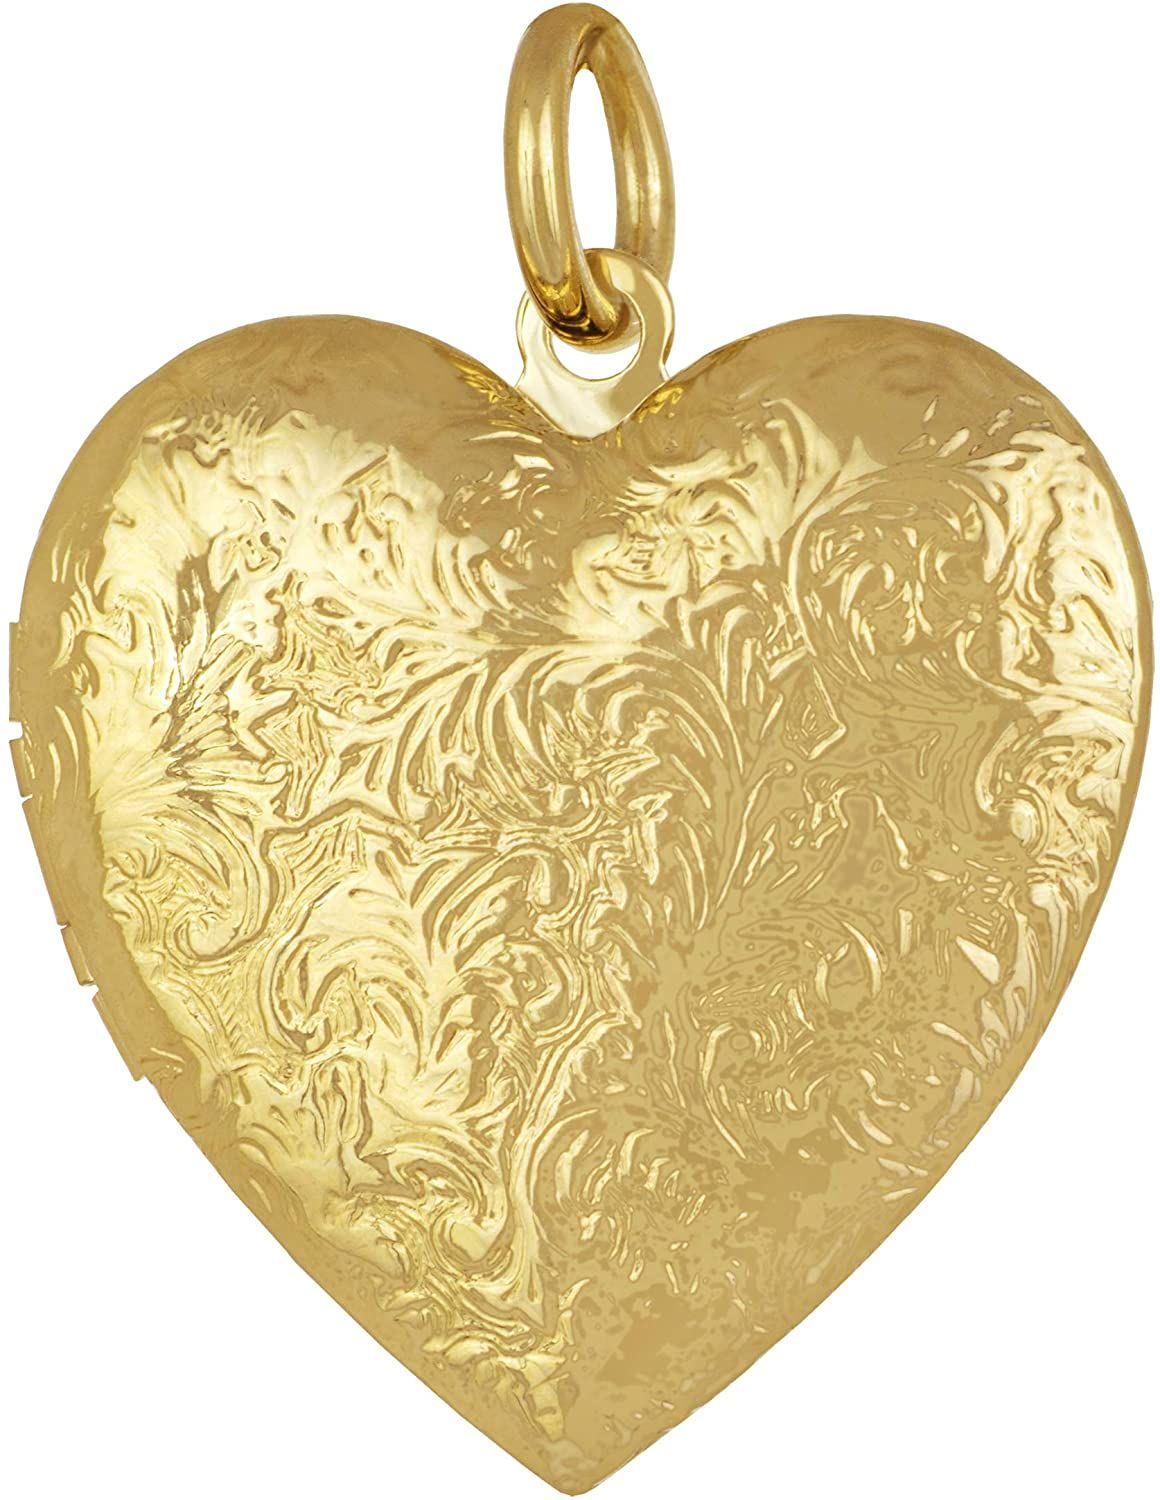 Lifetime Jewelry Antique Heart Locket Necklace That Holds Pictures 24k Gold Plated